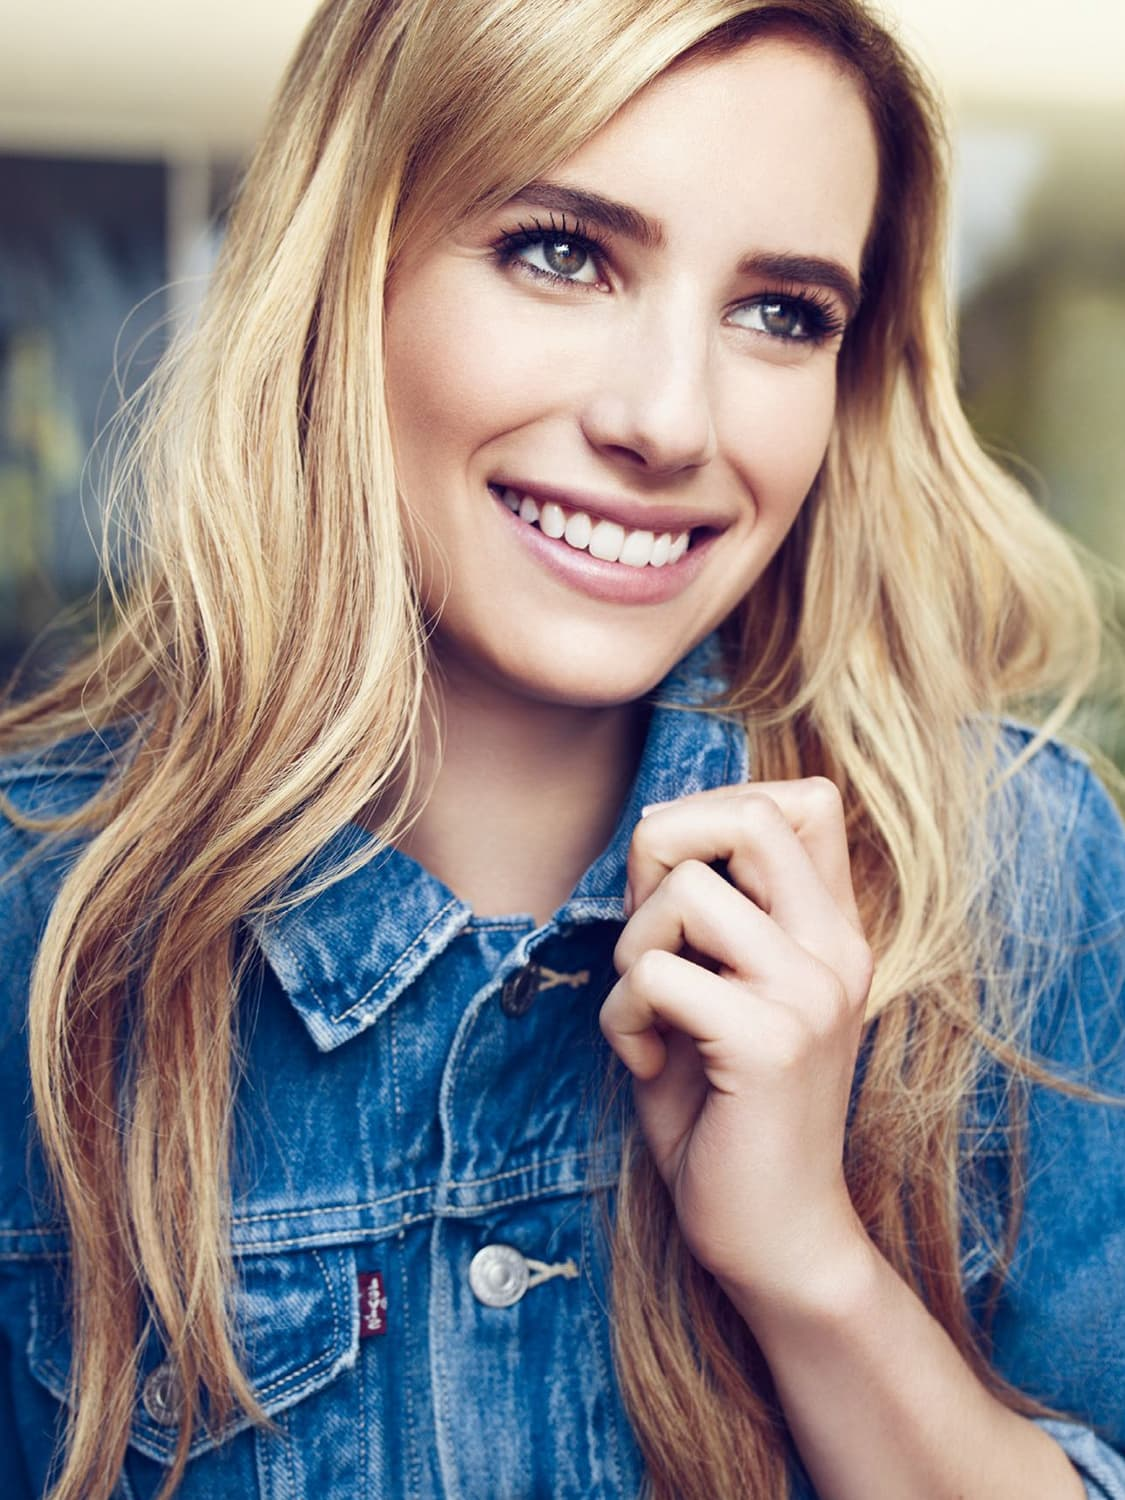 Love Cars Wallpapers 16 Emma Roberts Wallpapers High Quality Resolution Download